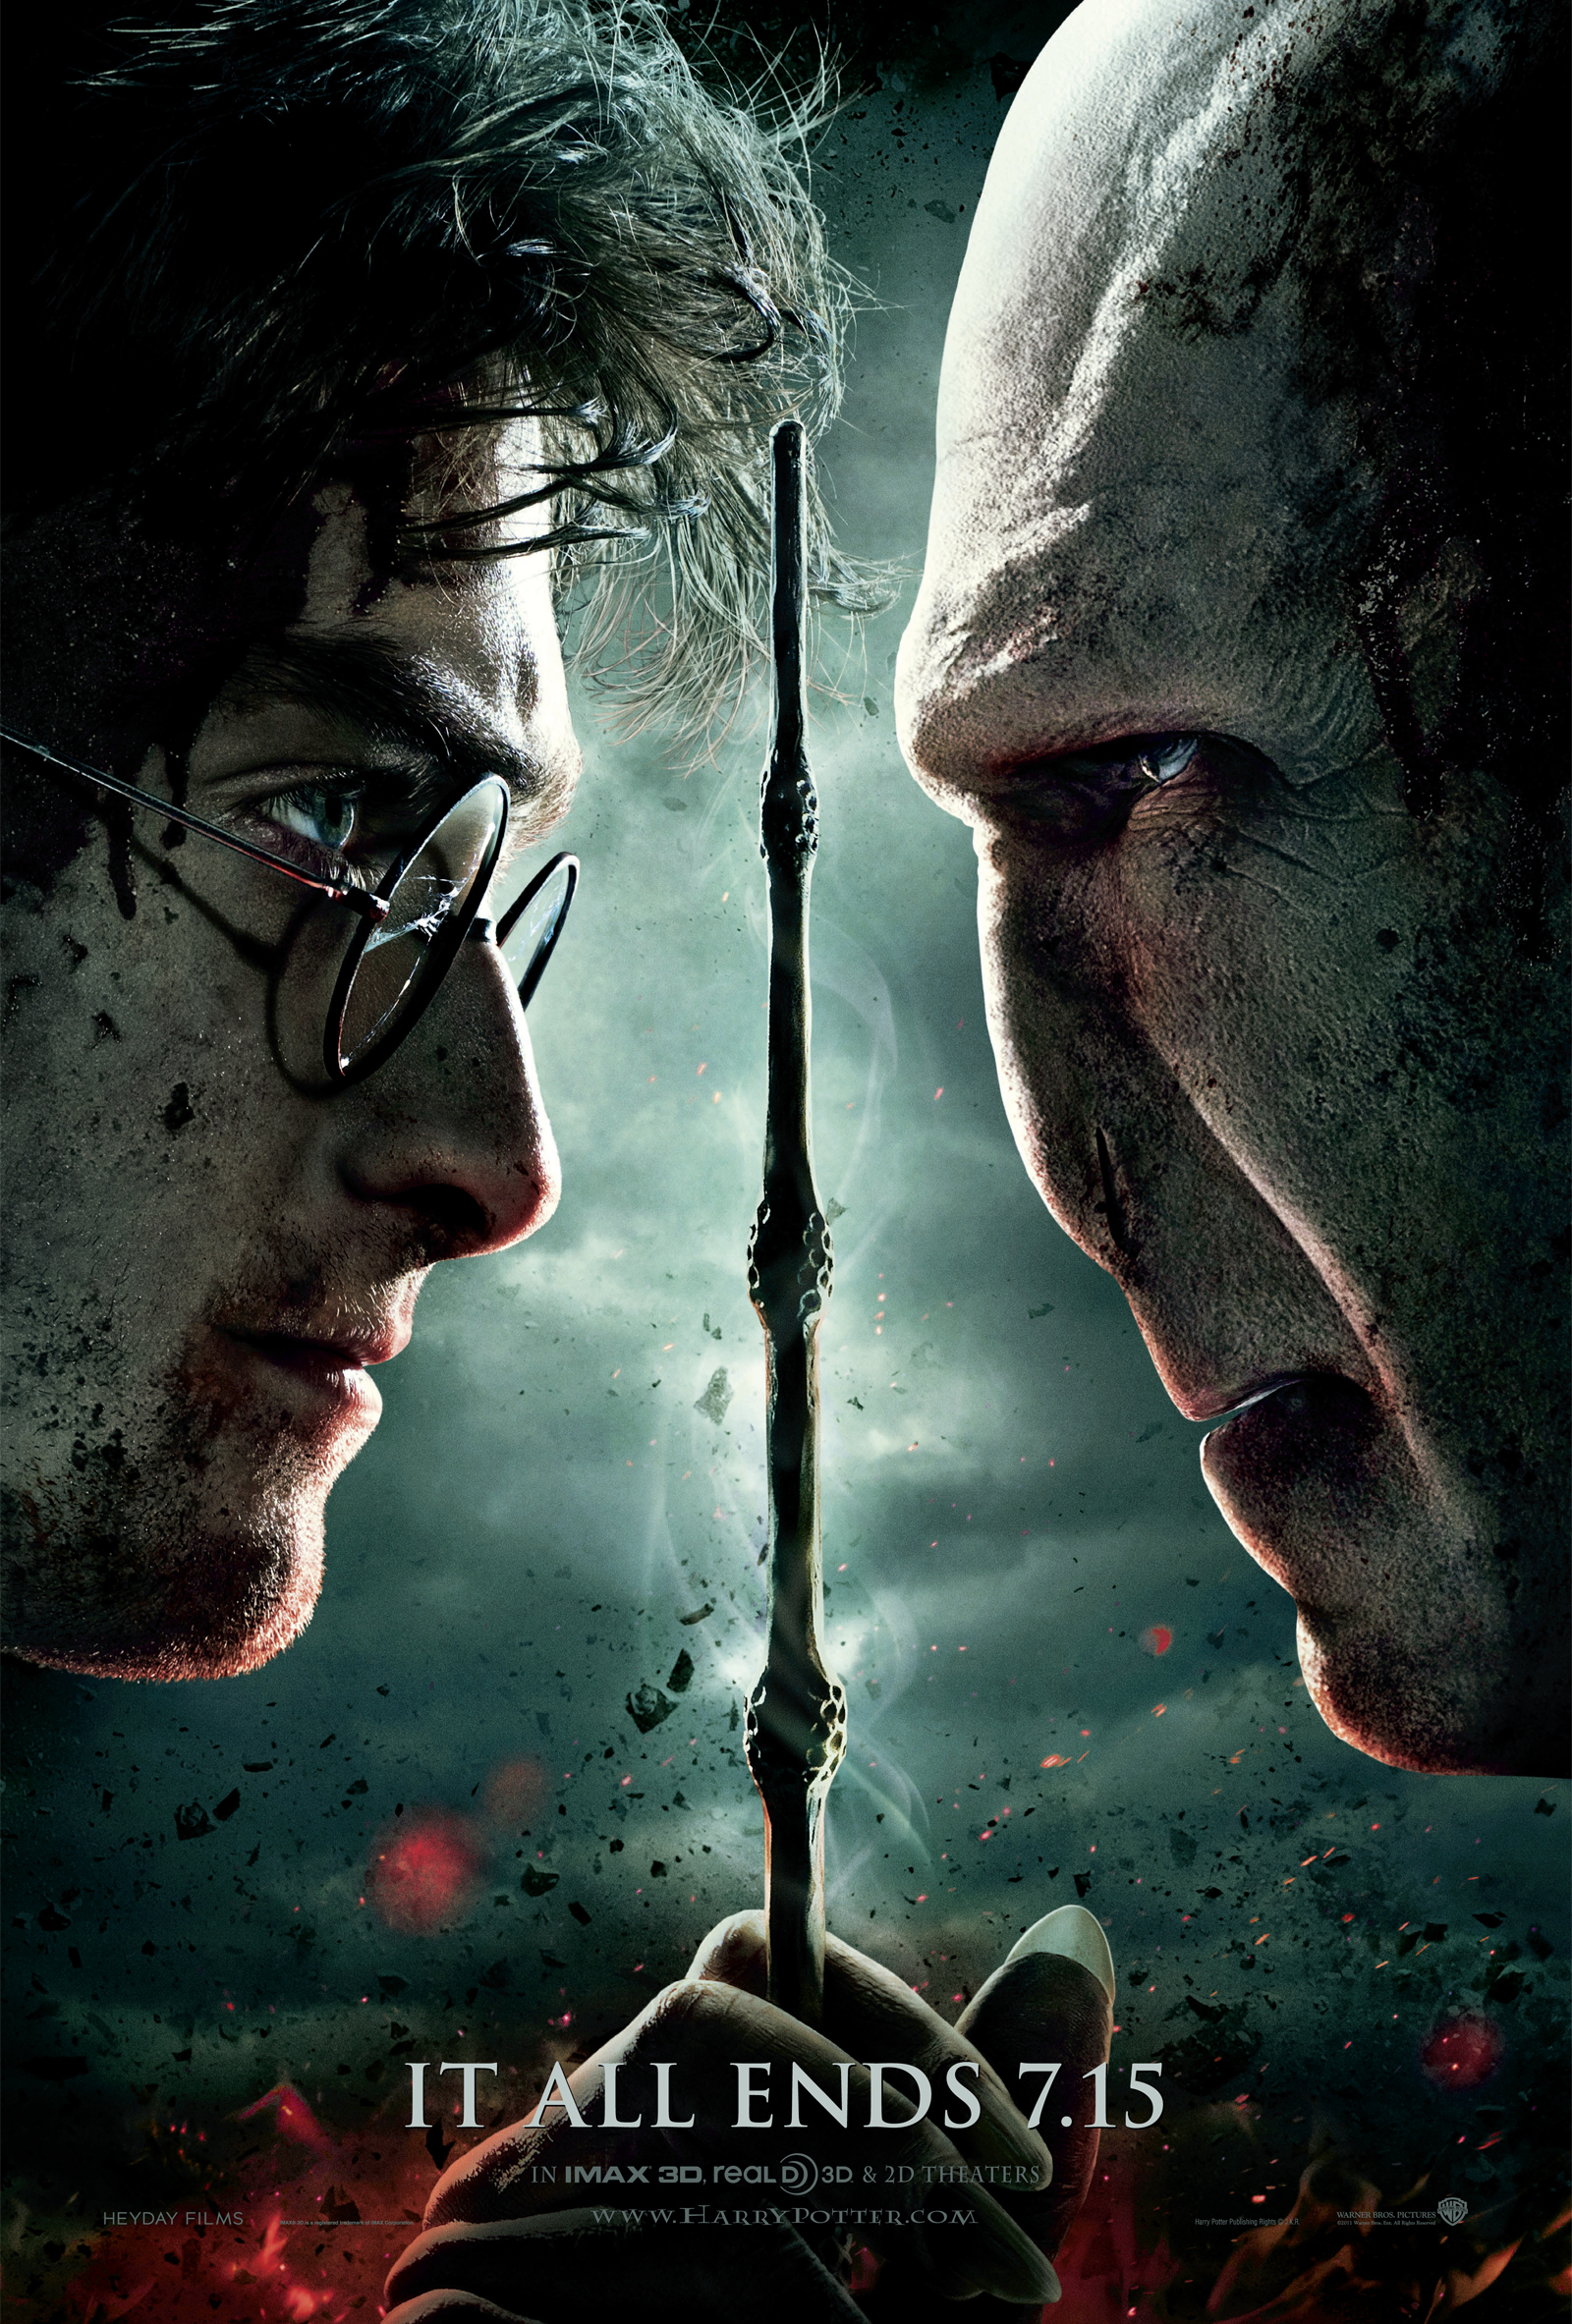 harry-potter-and-the-deathly-hallows-part-2-movie-poster-01.jpg